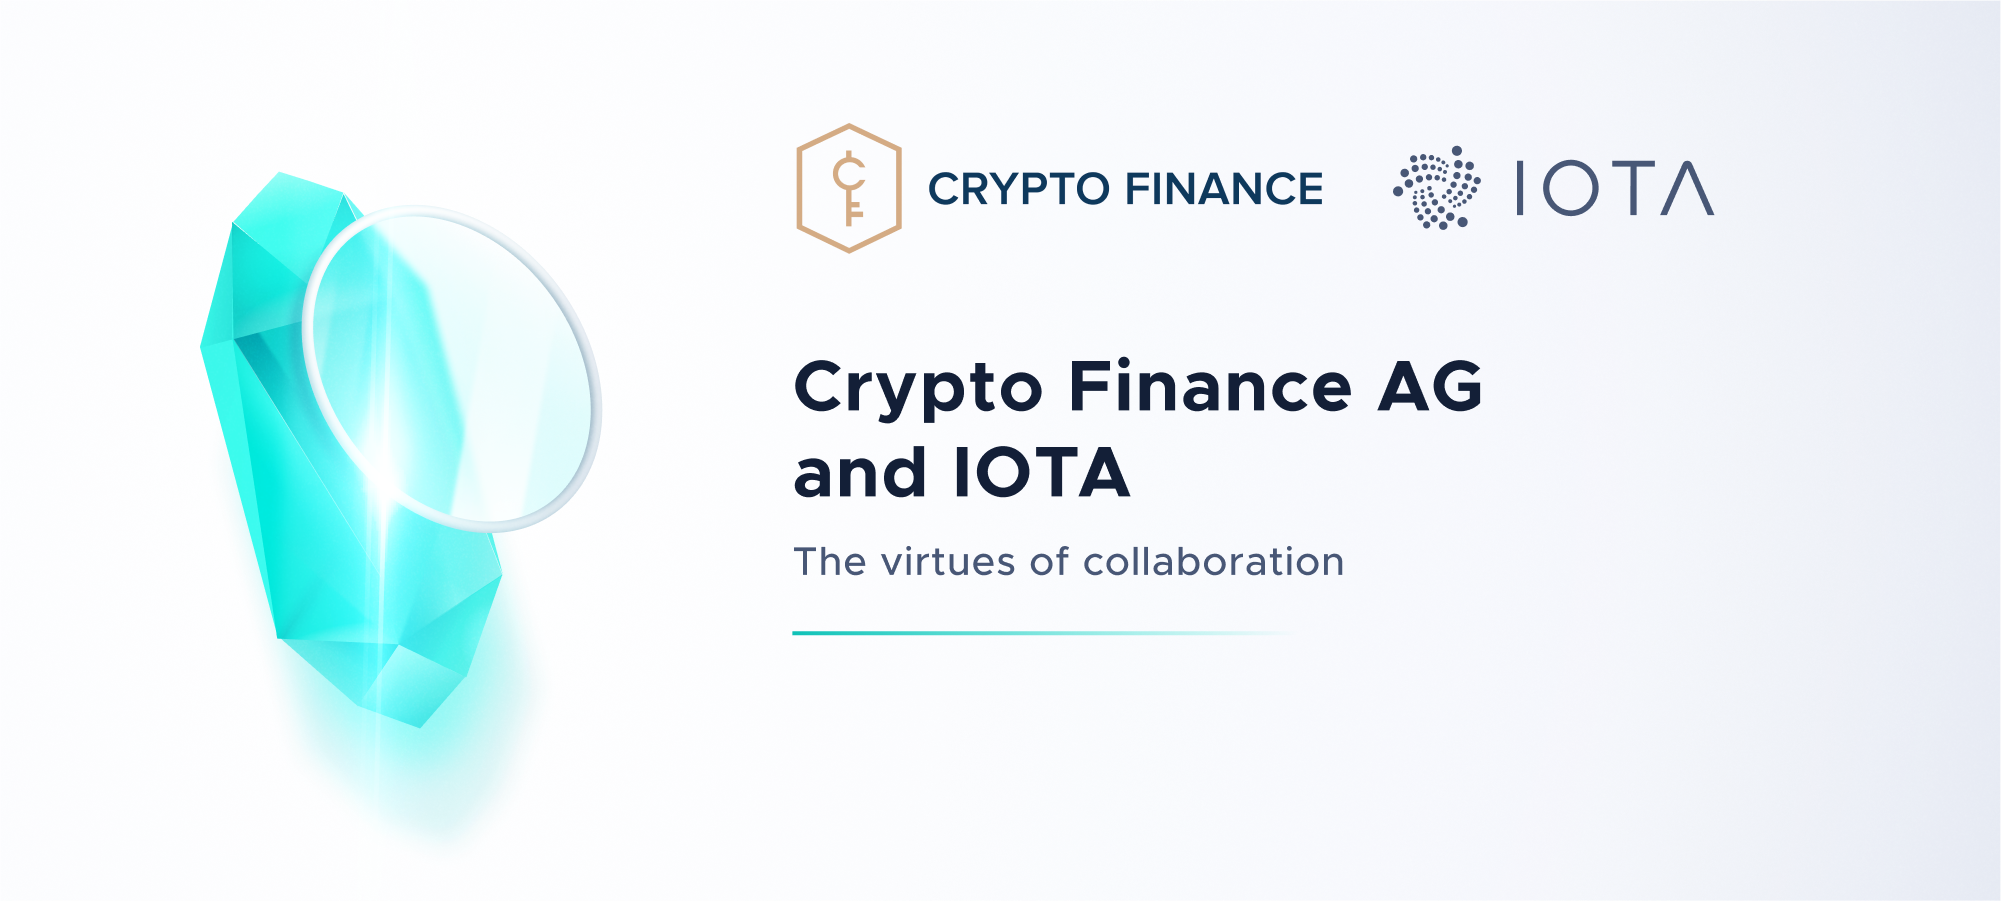 Crypto Finance AG and IOTA - The virtues of collaboration